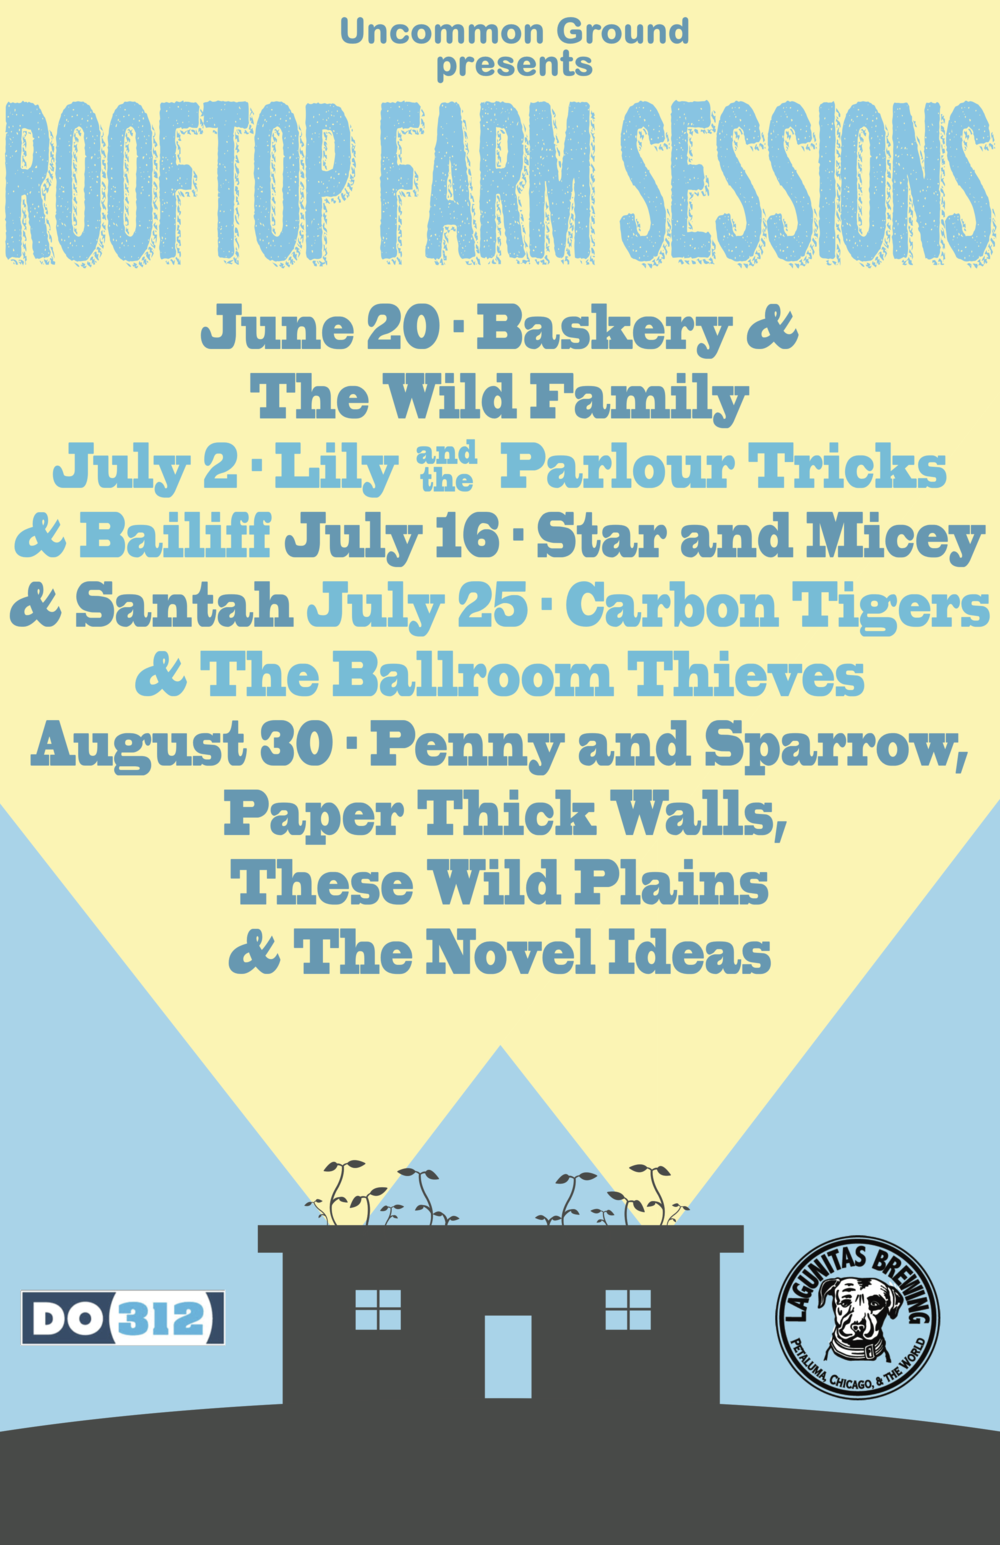 Rooftop Farm Sessions Poster for Uncommon Ground  | Laser Jet Print & Web Use